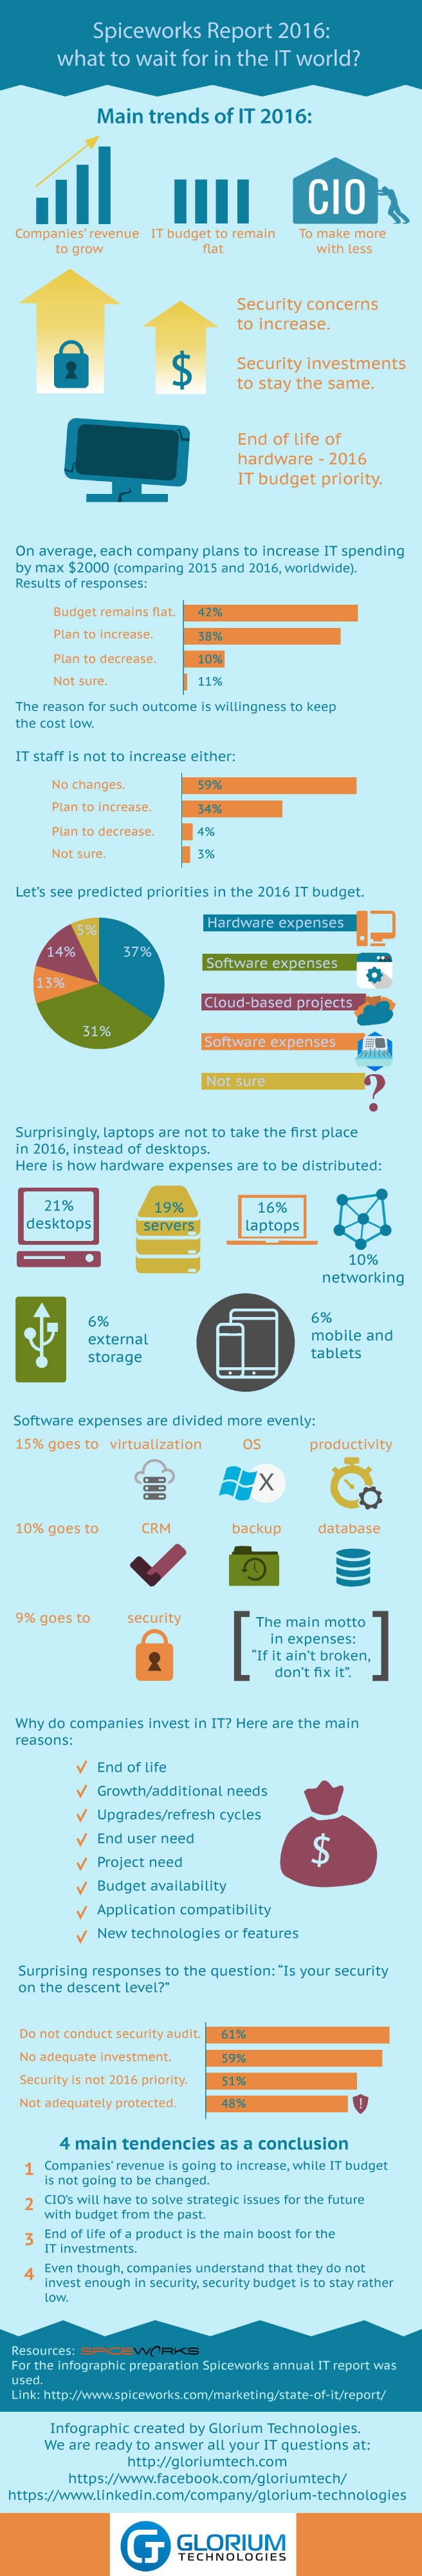 Spiceworks Report: IT Trends 2016 [Infographic]